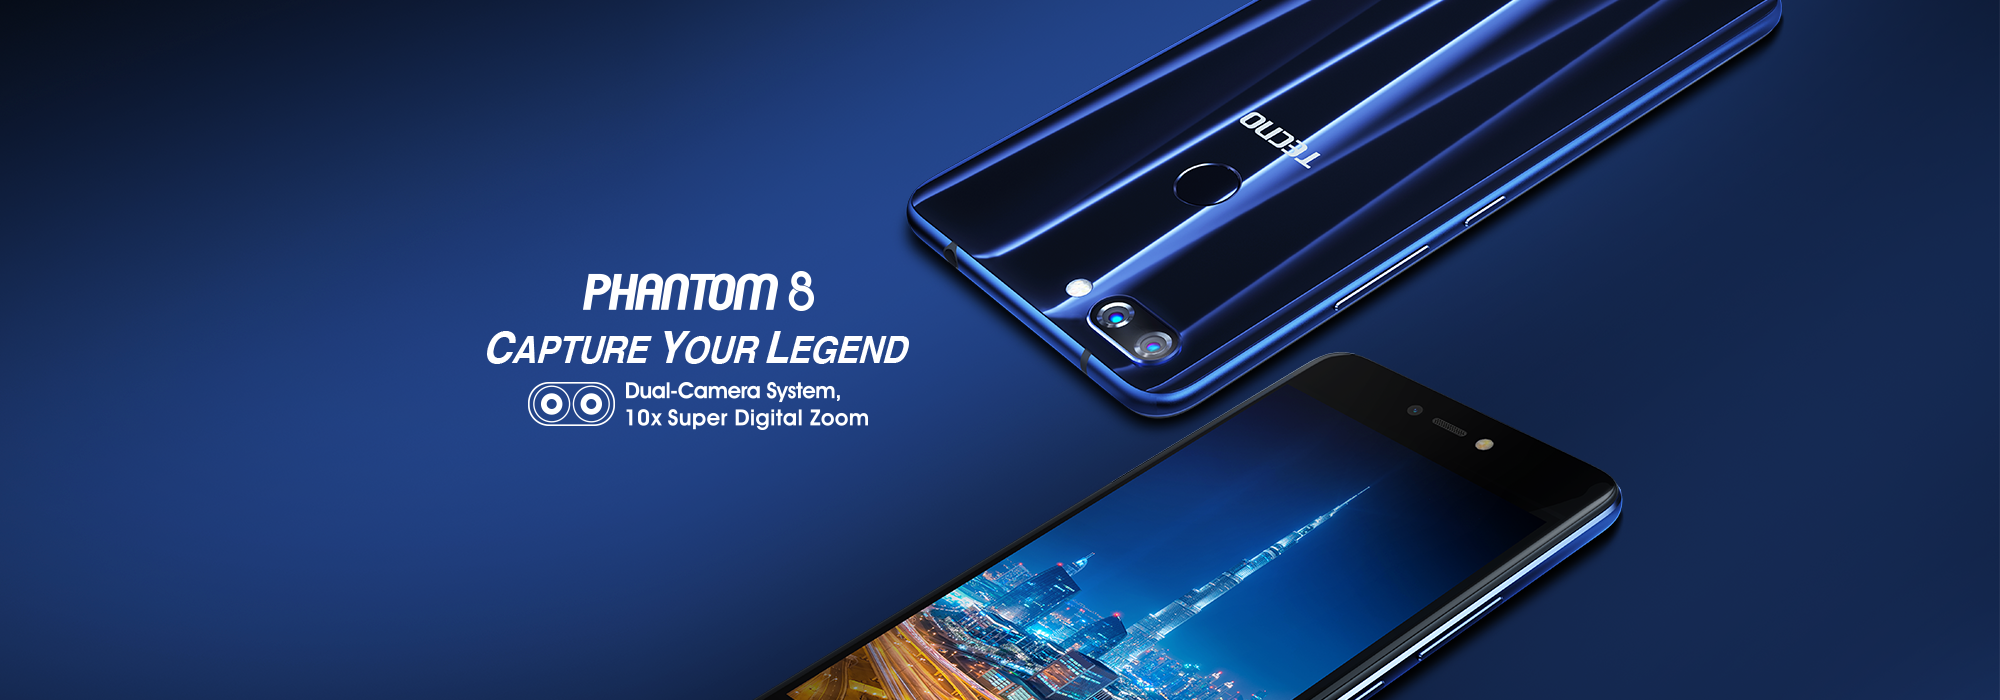 product chapter pc 2000x700 - Tecno Phantom 8 Price and Specification in Nigeria, Ghana and Kenya.